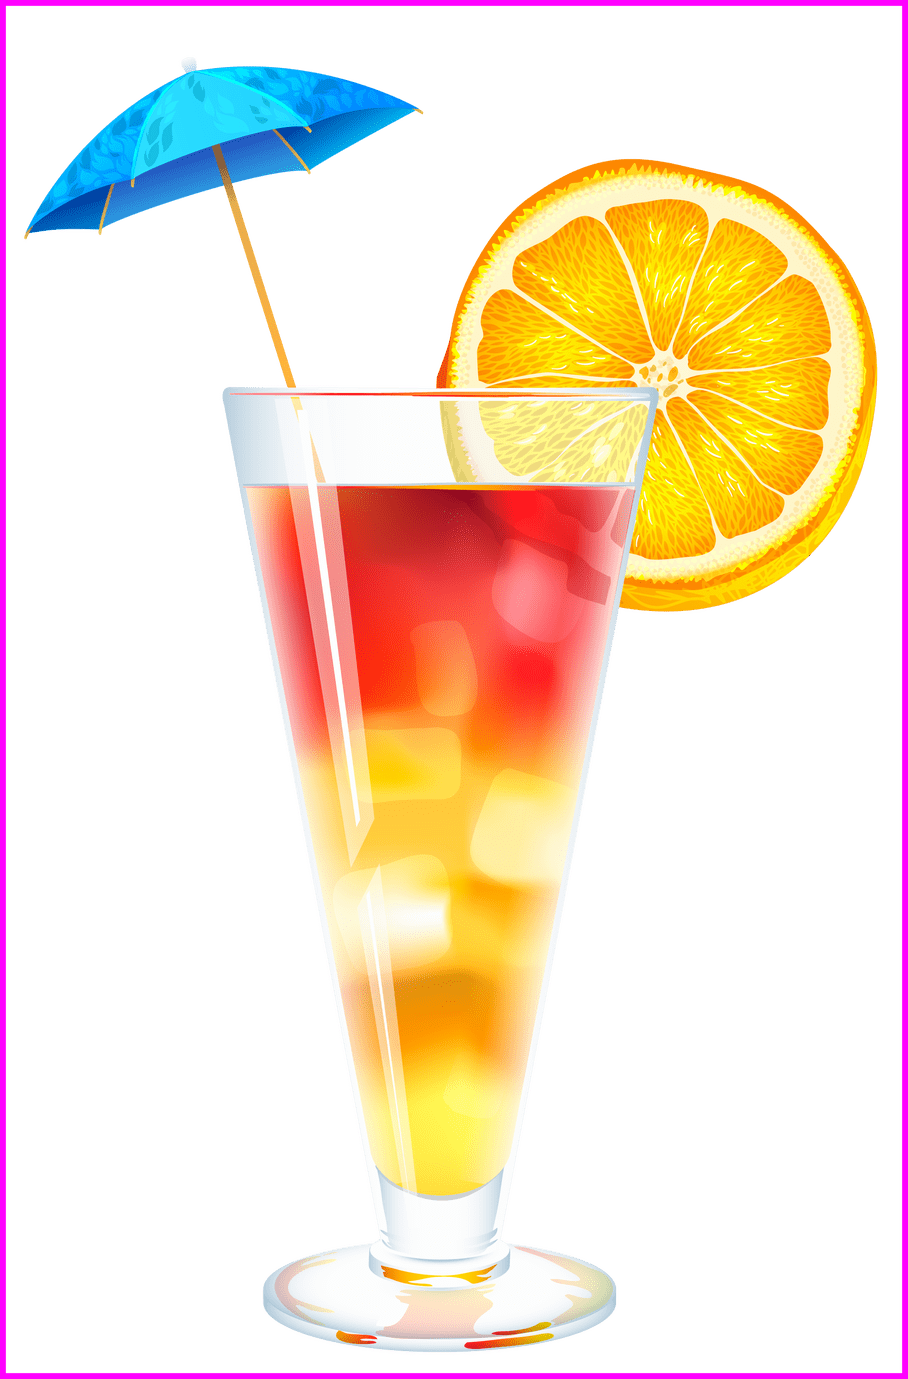 Clothing clipart summer season. Amazing cocktail png image